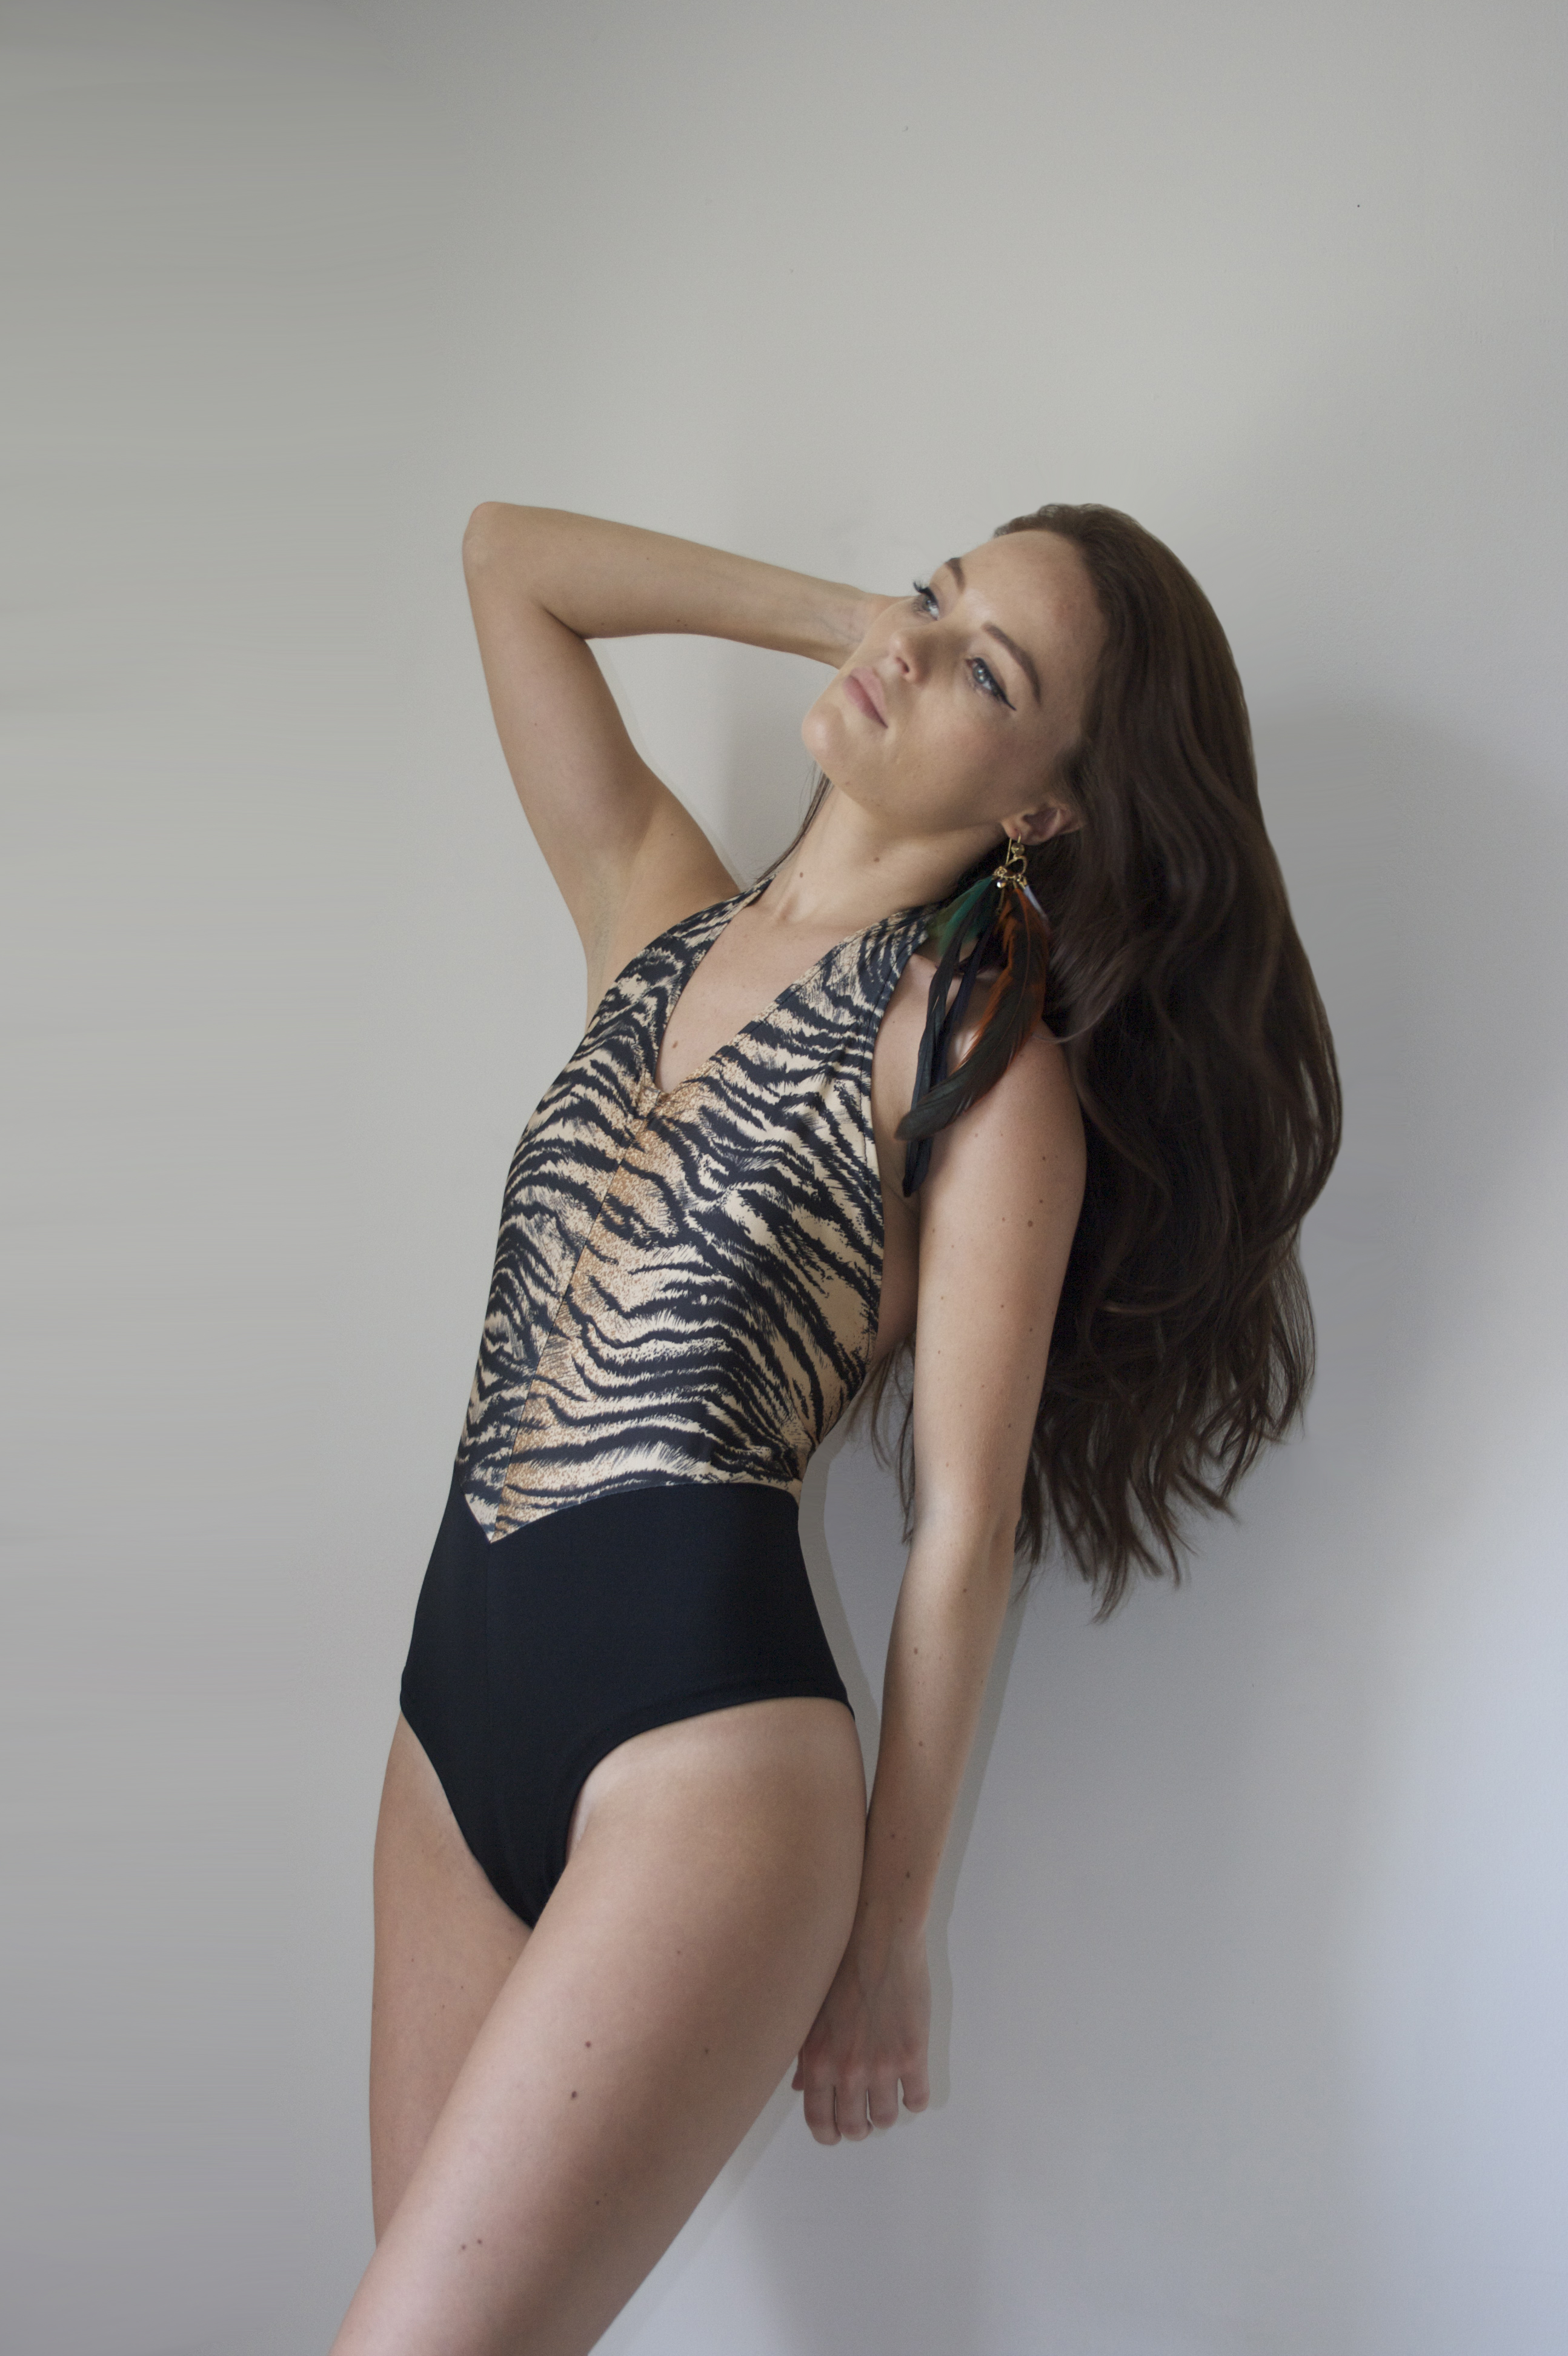 SS14 - Blk and animal print Swimsu